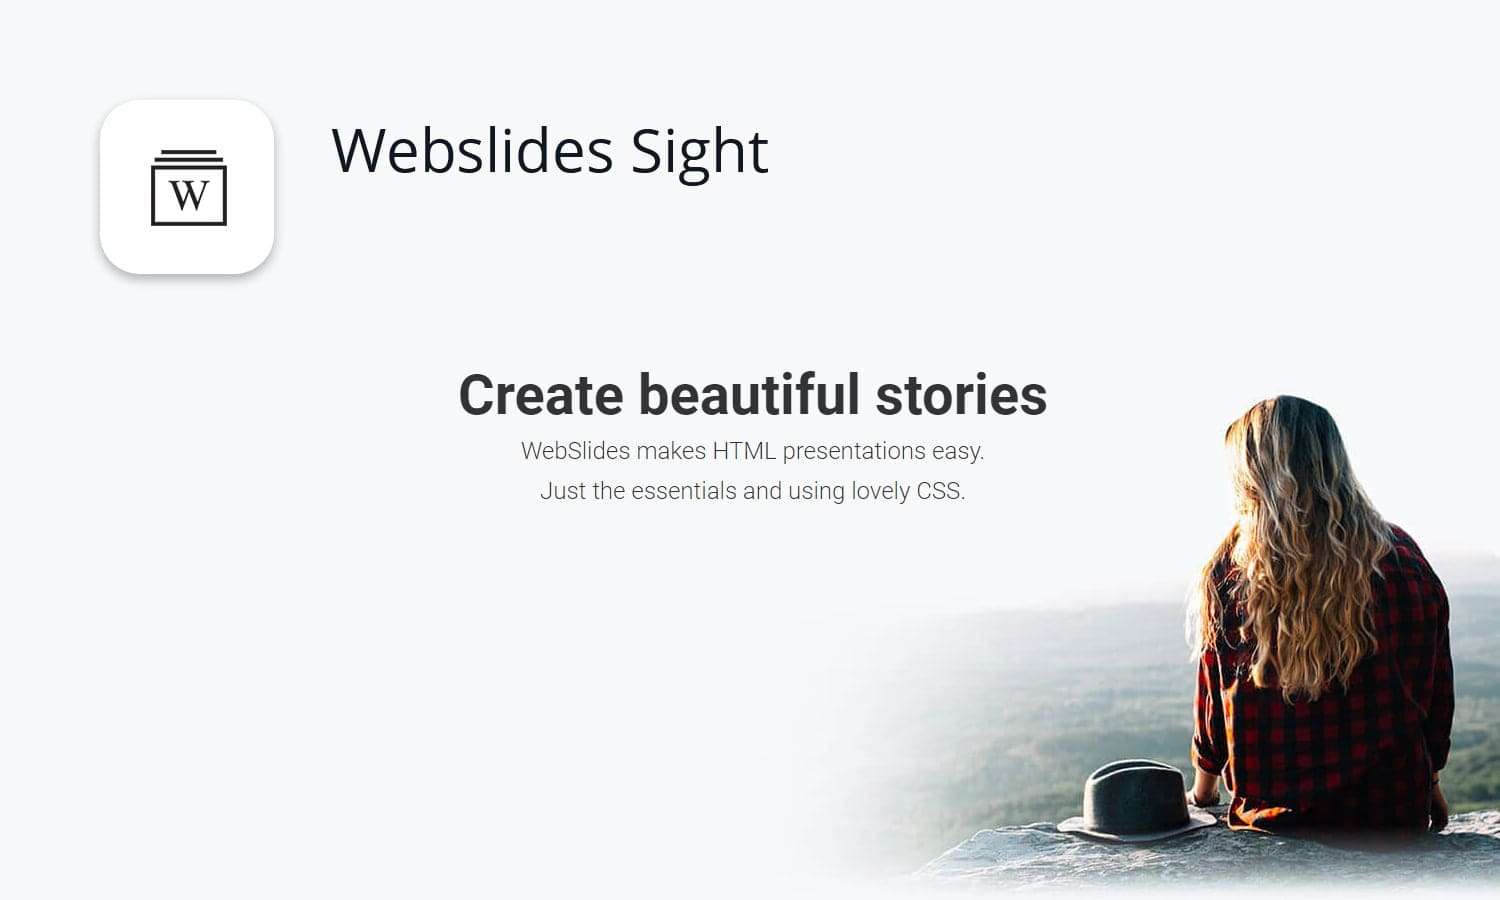 Webslides Sight